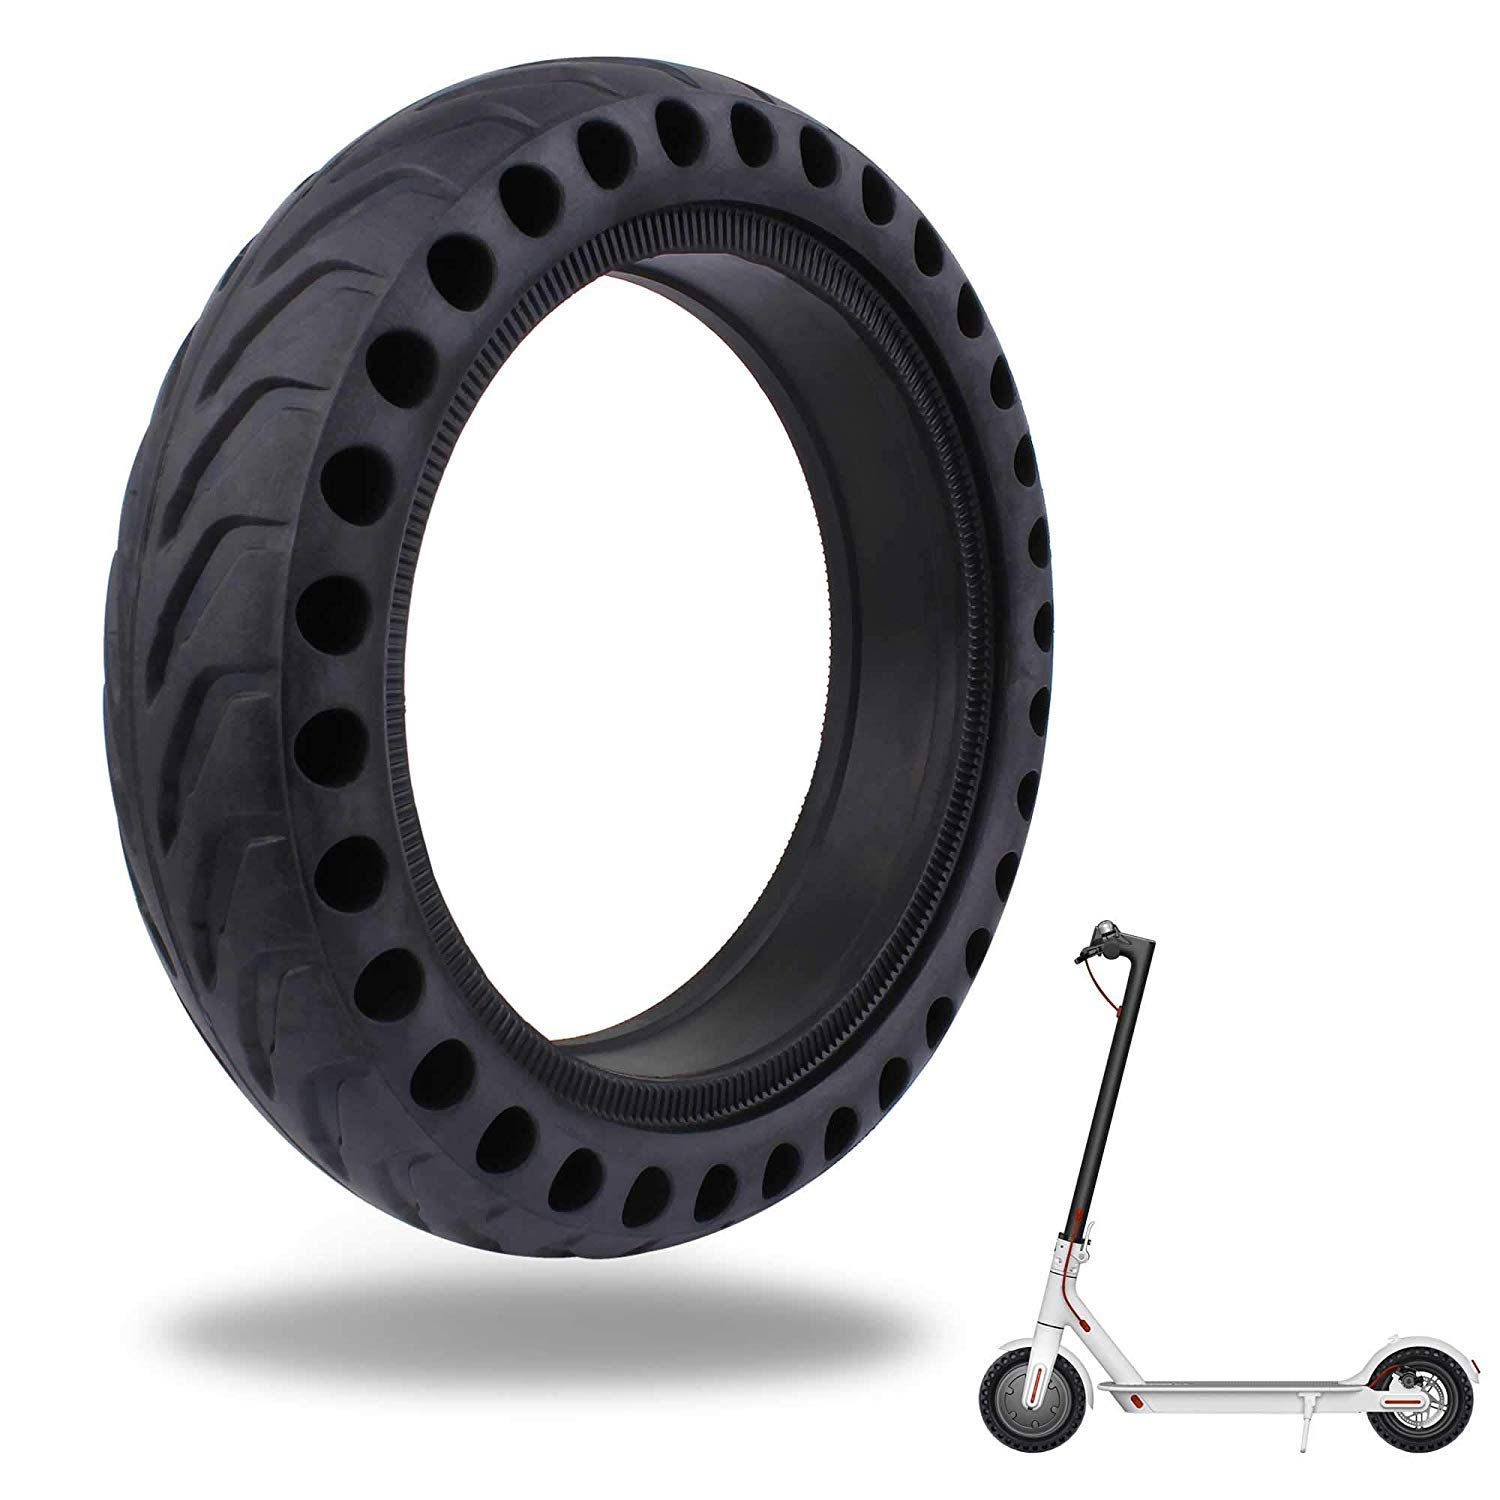 LuYang Solid Tire Replacement for Electric Scooter Xiaomi Mi m365 / gotrax gxl V2, 8.5 inches Scooter Wheel's Replacement Explosion-Proof Solid Tire for Xiaomi Mijia M365 / GOTRAX GXL V2【One Piece】